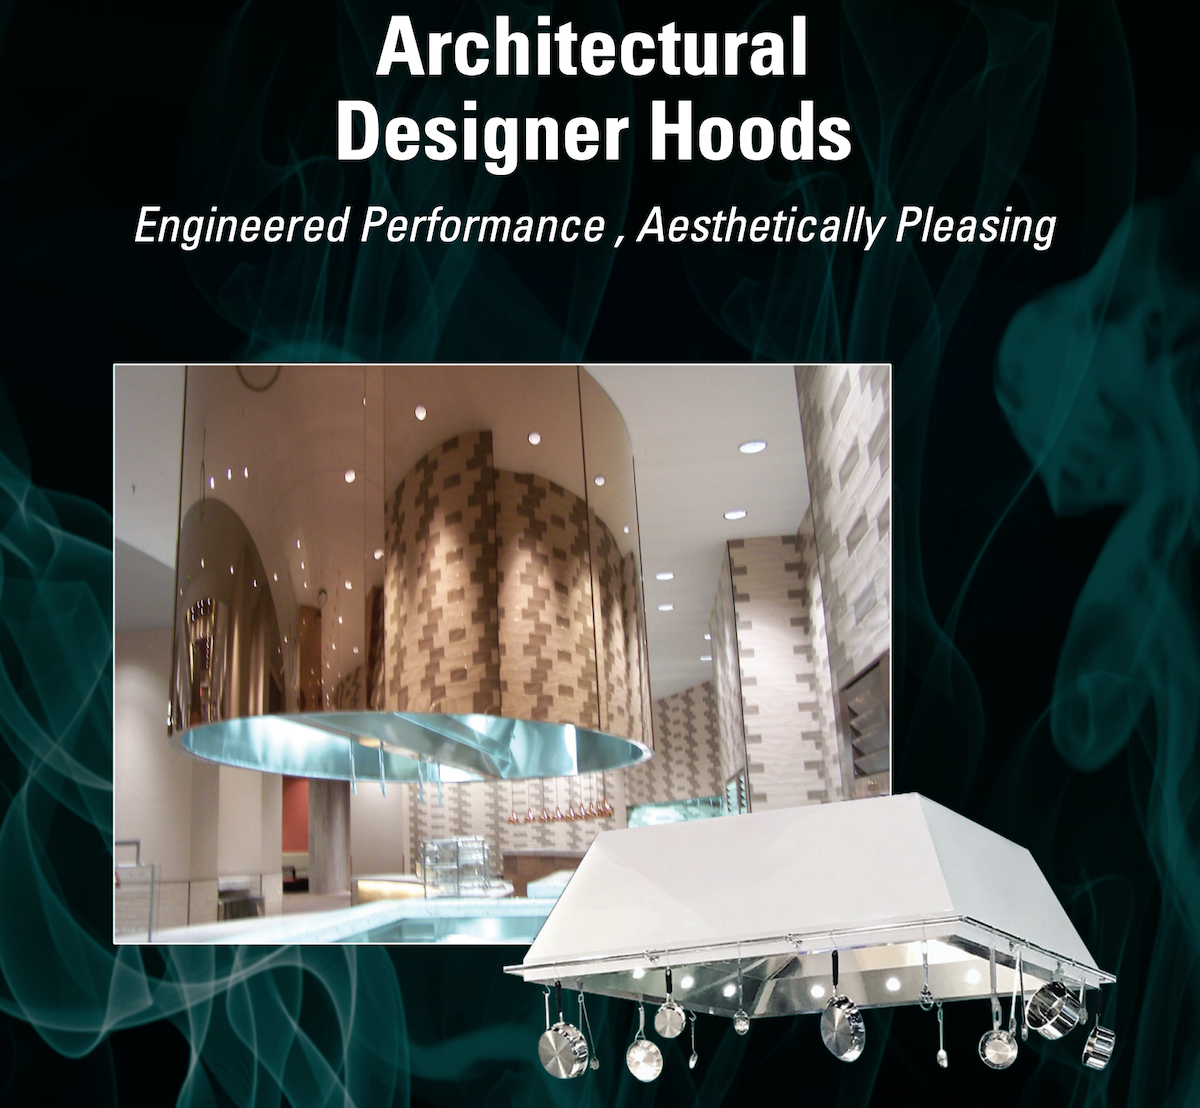 Caddy Architectural Designer Hoods Offer Both Quality and Eye-Catching Design